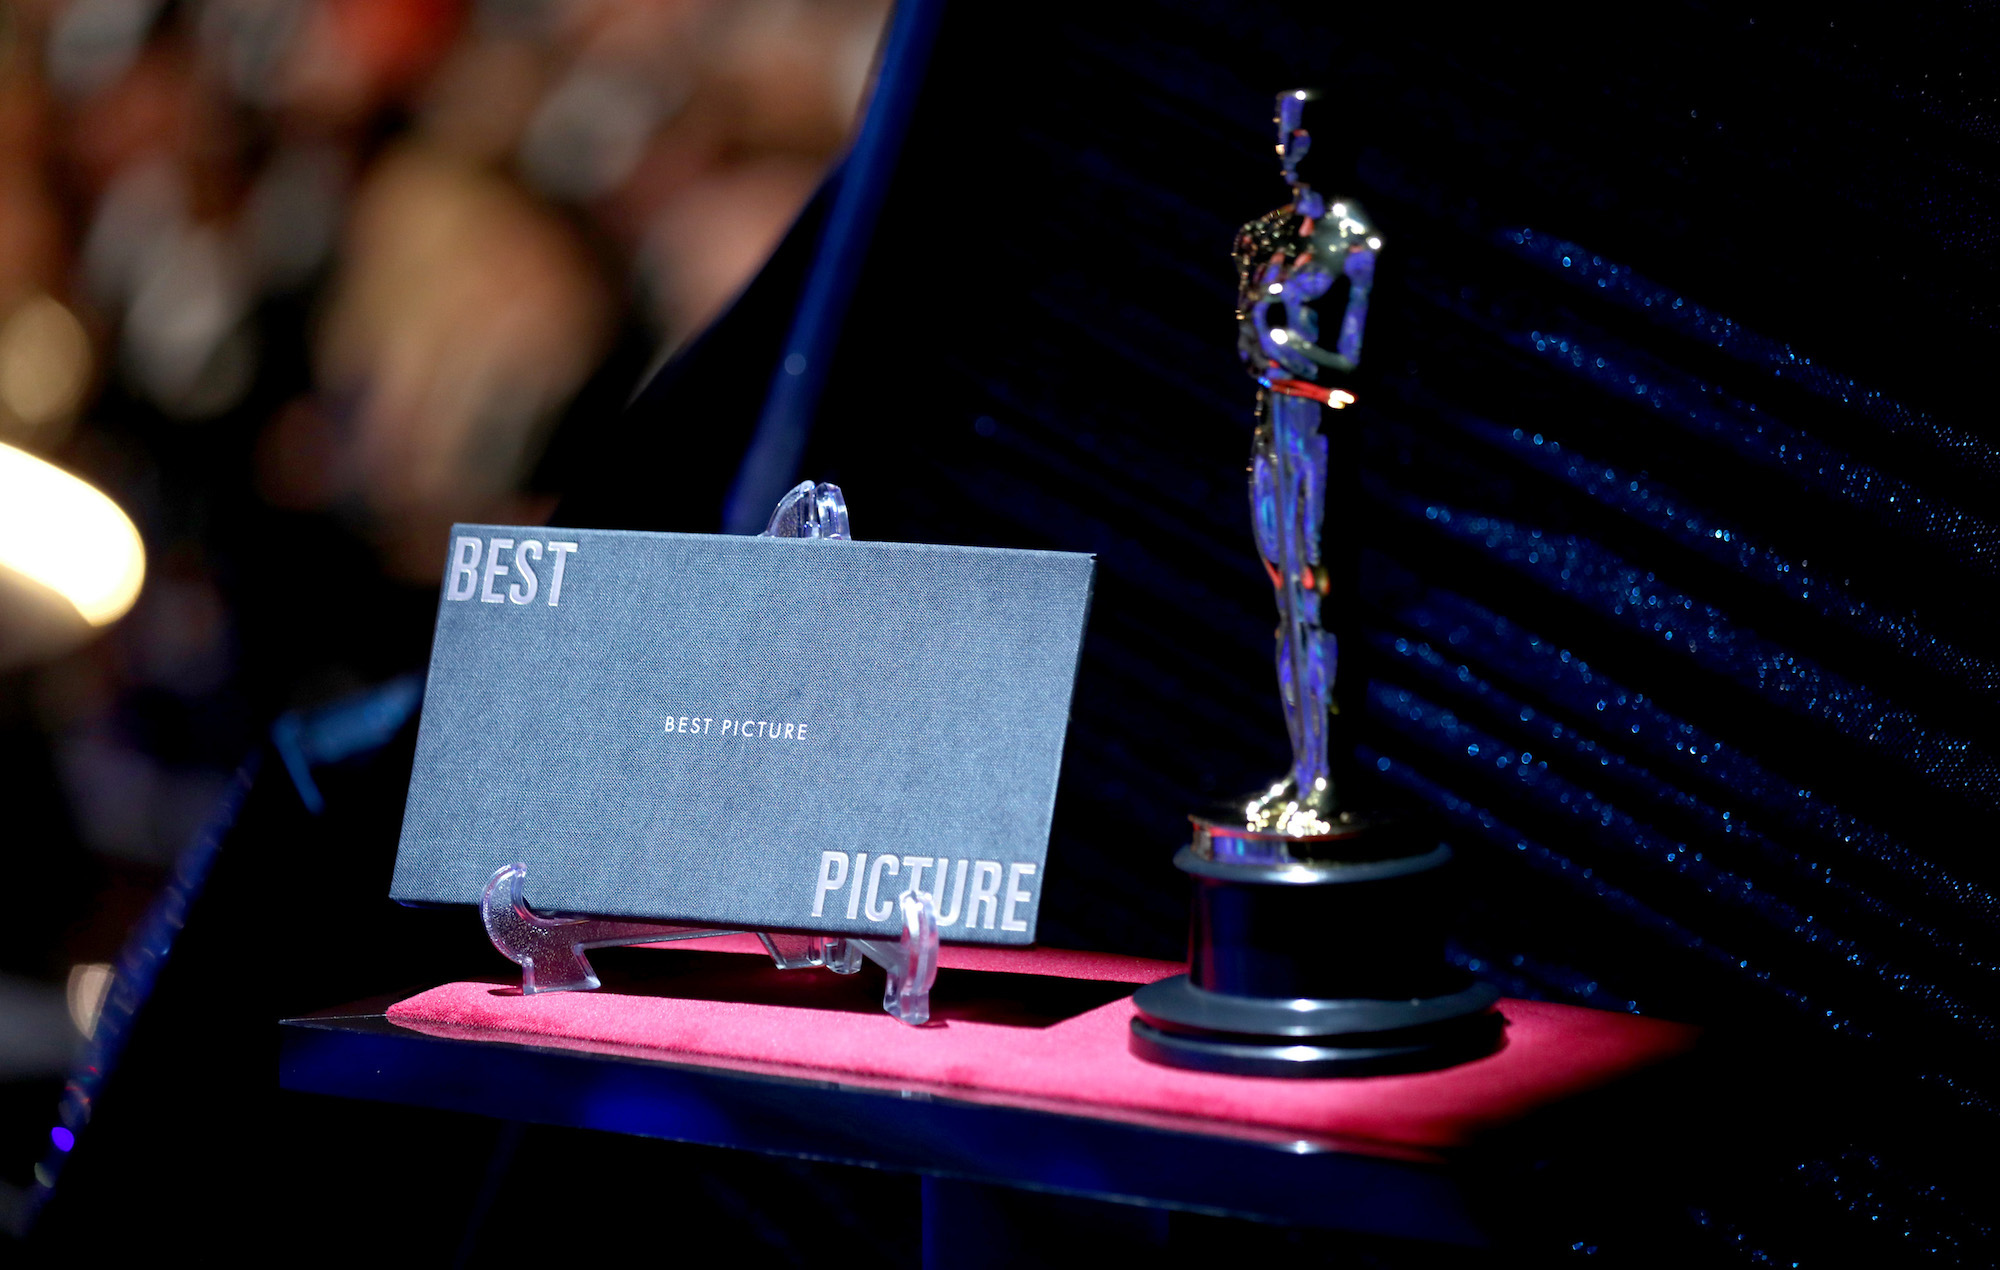 NME Festival blog: The Academy say new popular film Oscar needs 'further study' and won't feature in 2019 ceremony